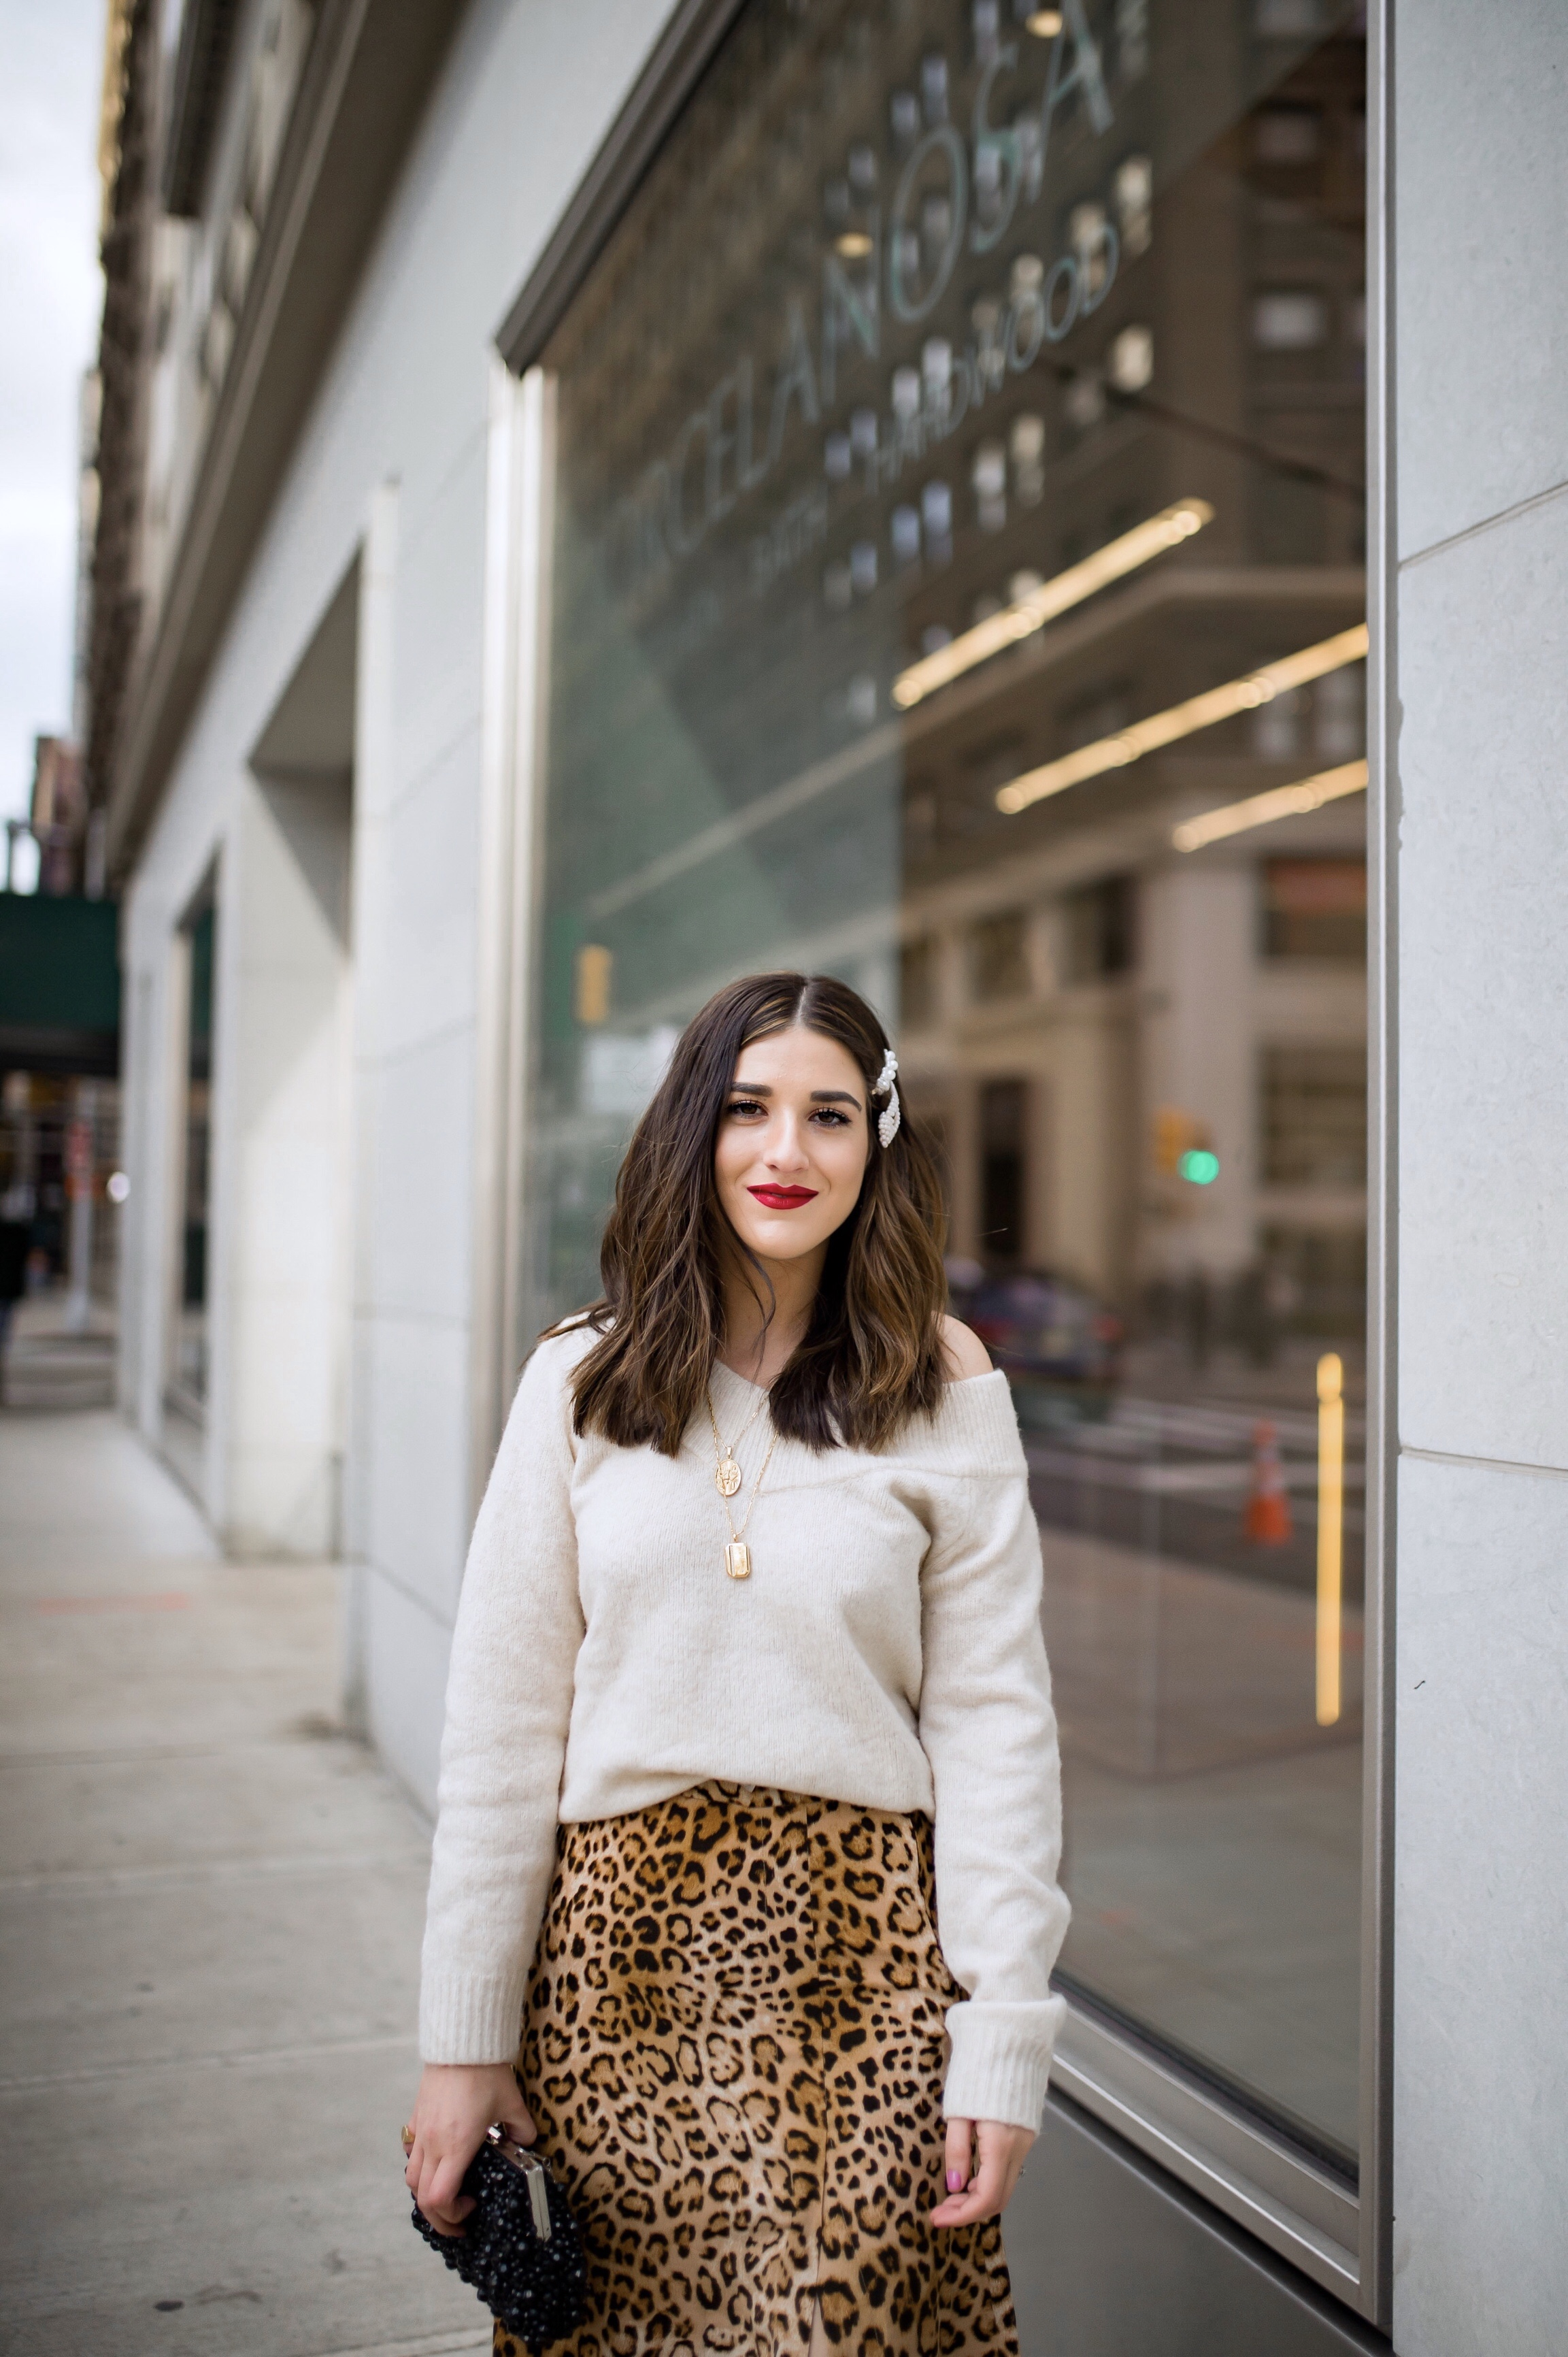 The Instagram Likes Debate Leopard Midi Skirt Beige Sweater Esther Santer Fashion Blog NYC Street Style Blogger Outfit OOTD Trendy Shopping Girl What Wear H&M Zara Pearl Barrettes Hair Clips Accessories Sandals Mules Necklaces Bag Beaded Clutch Spring.jpg